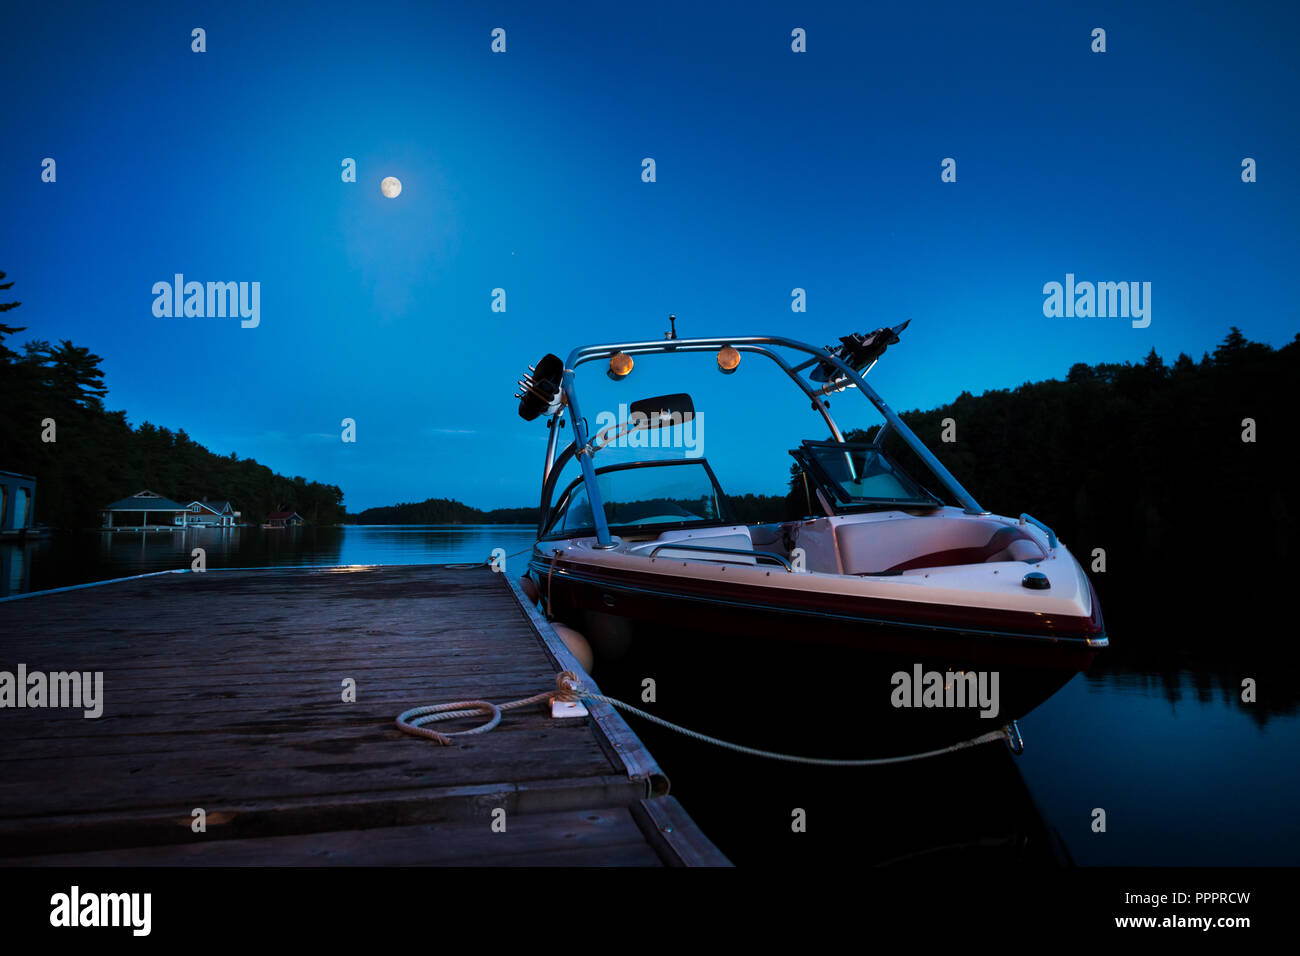 A wakeboard boat docked on Lake Joseph in the evening with the moon in the background. - Stock Image